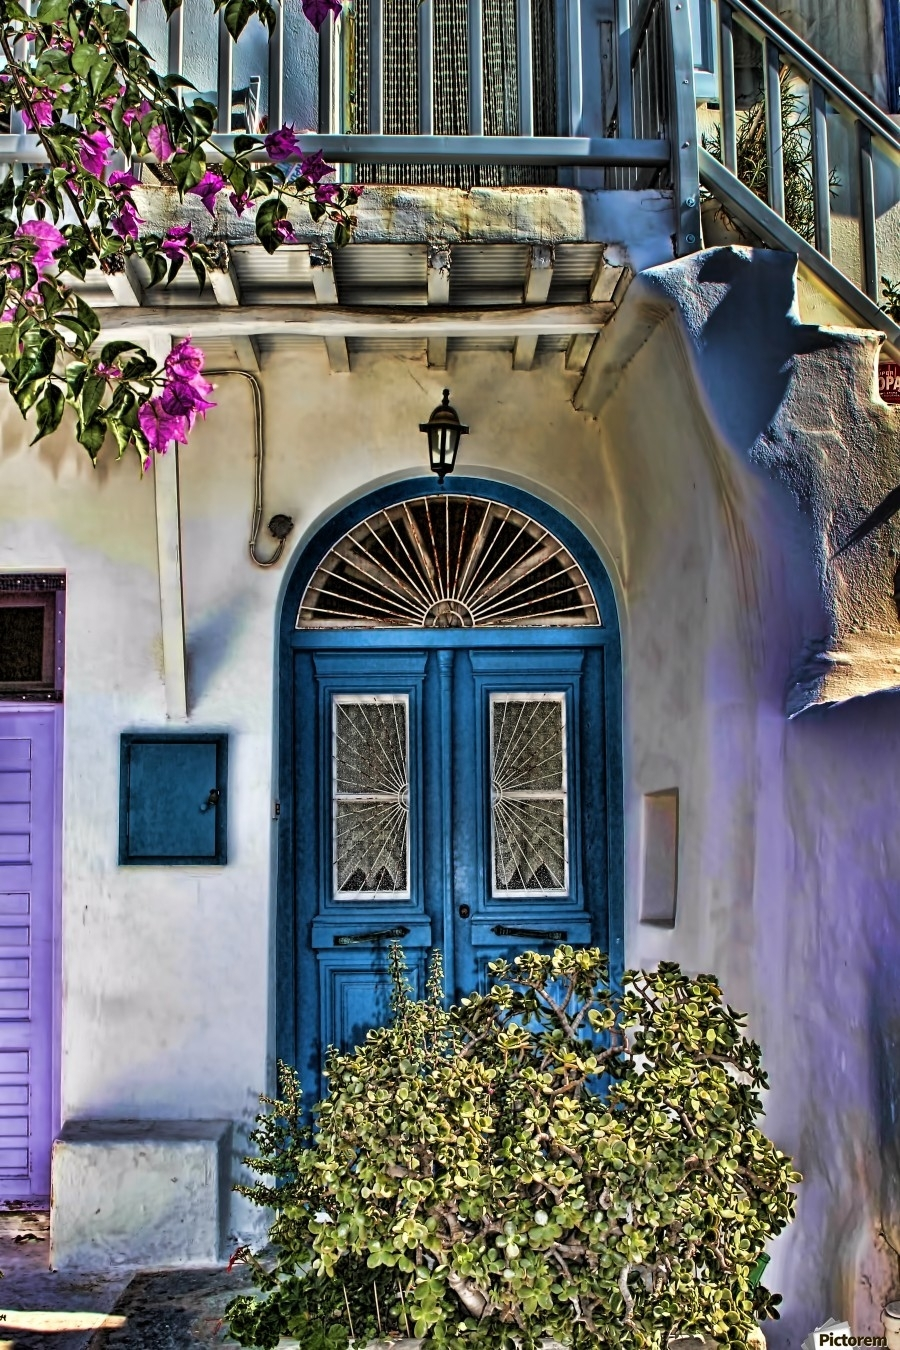 The Blue Door Santorini – Tom Prendergast Canvas Within Most Recently Released Greece Canvas Wall Art (View 14 of 15)